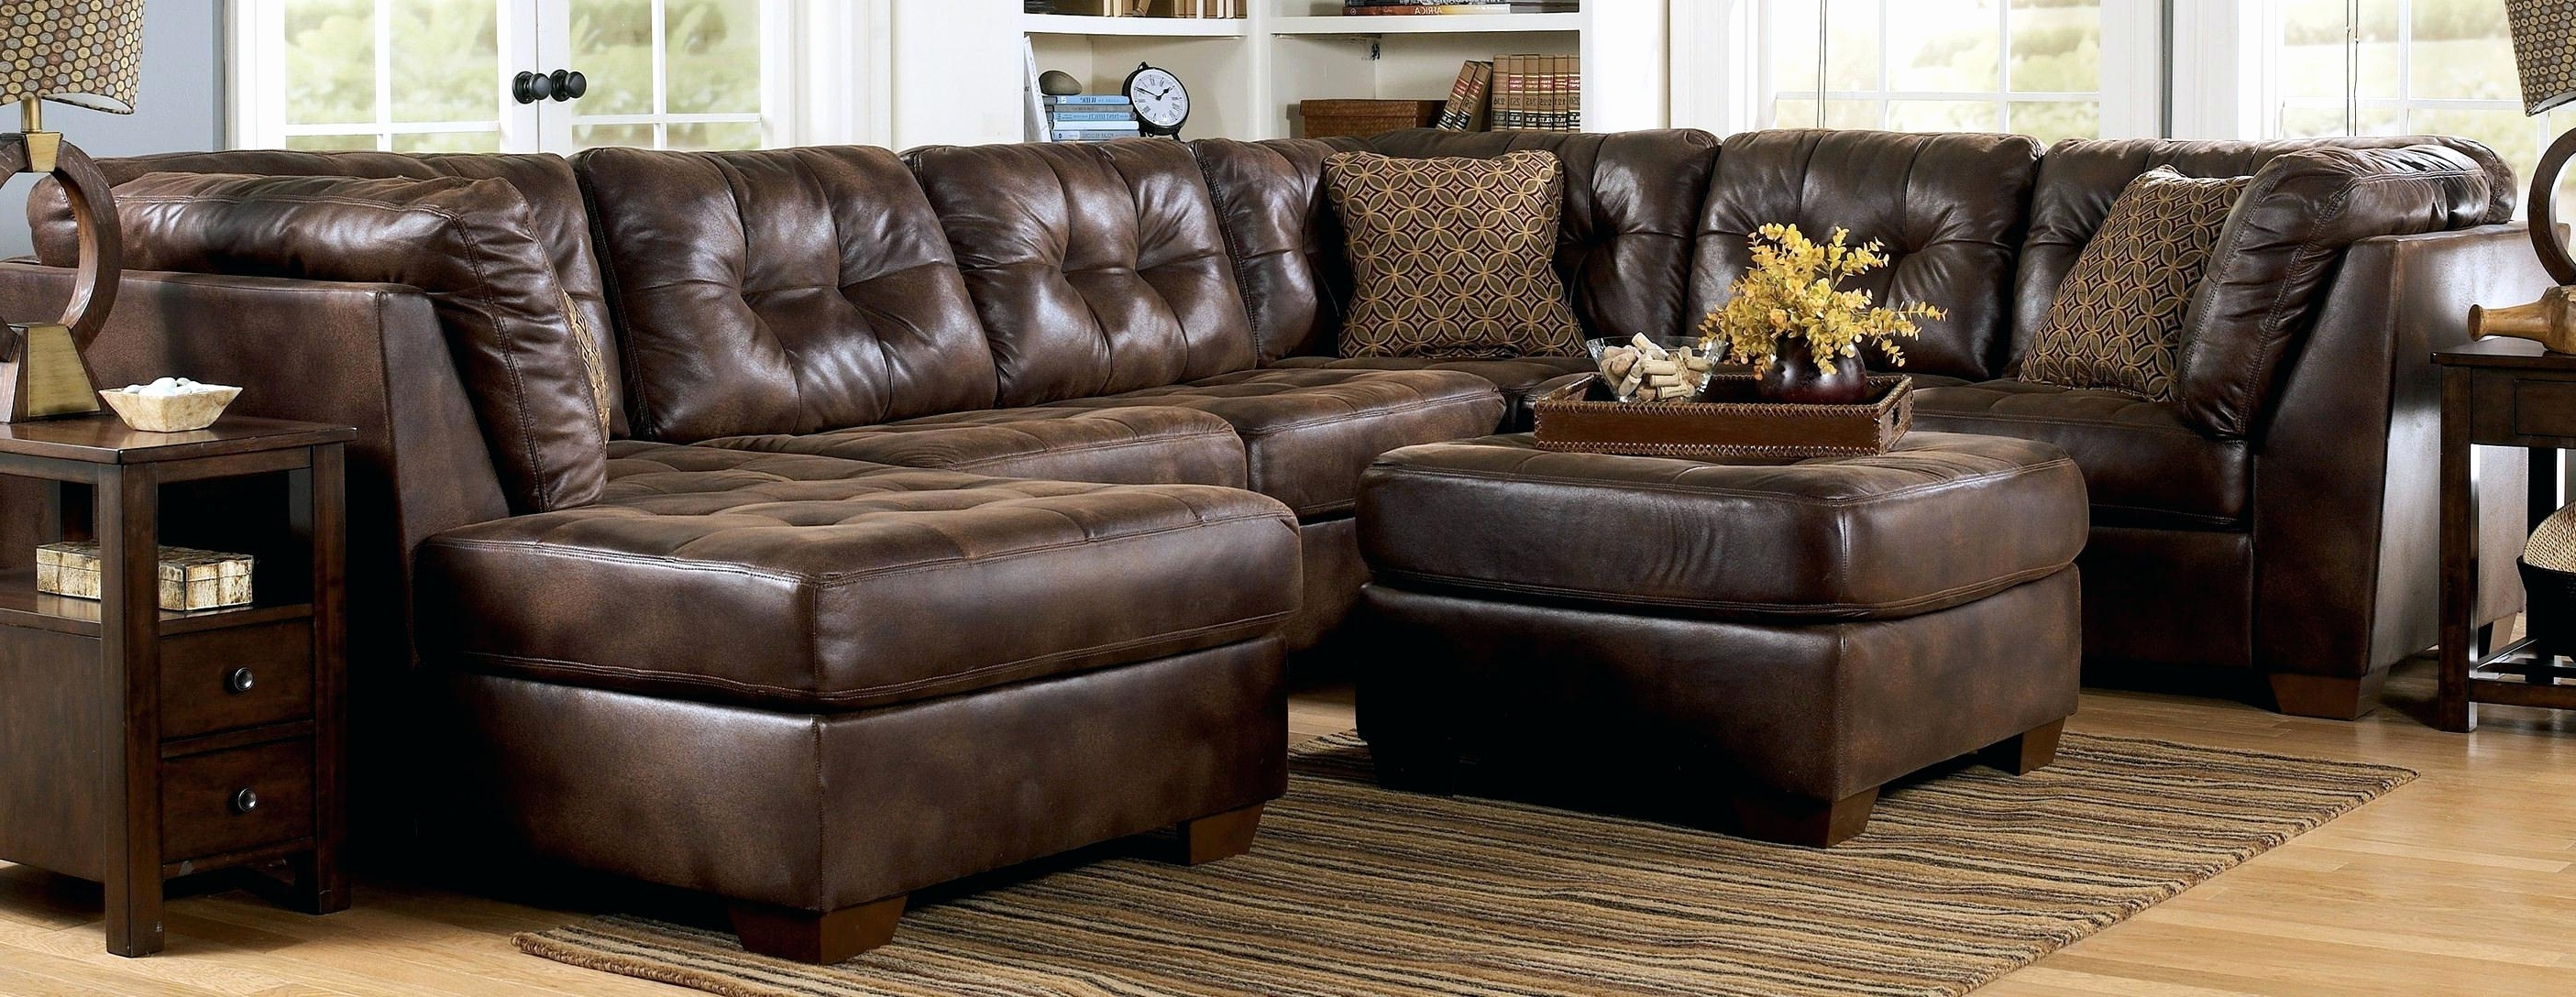 Leather Sofas With Chaise Lounge For Most Recently Released Awesome Brown Leather Couch With Studs 2018 – Couches And Sofas Ideas (View 5 of 15)